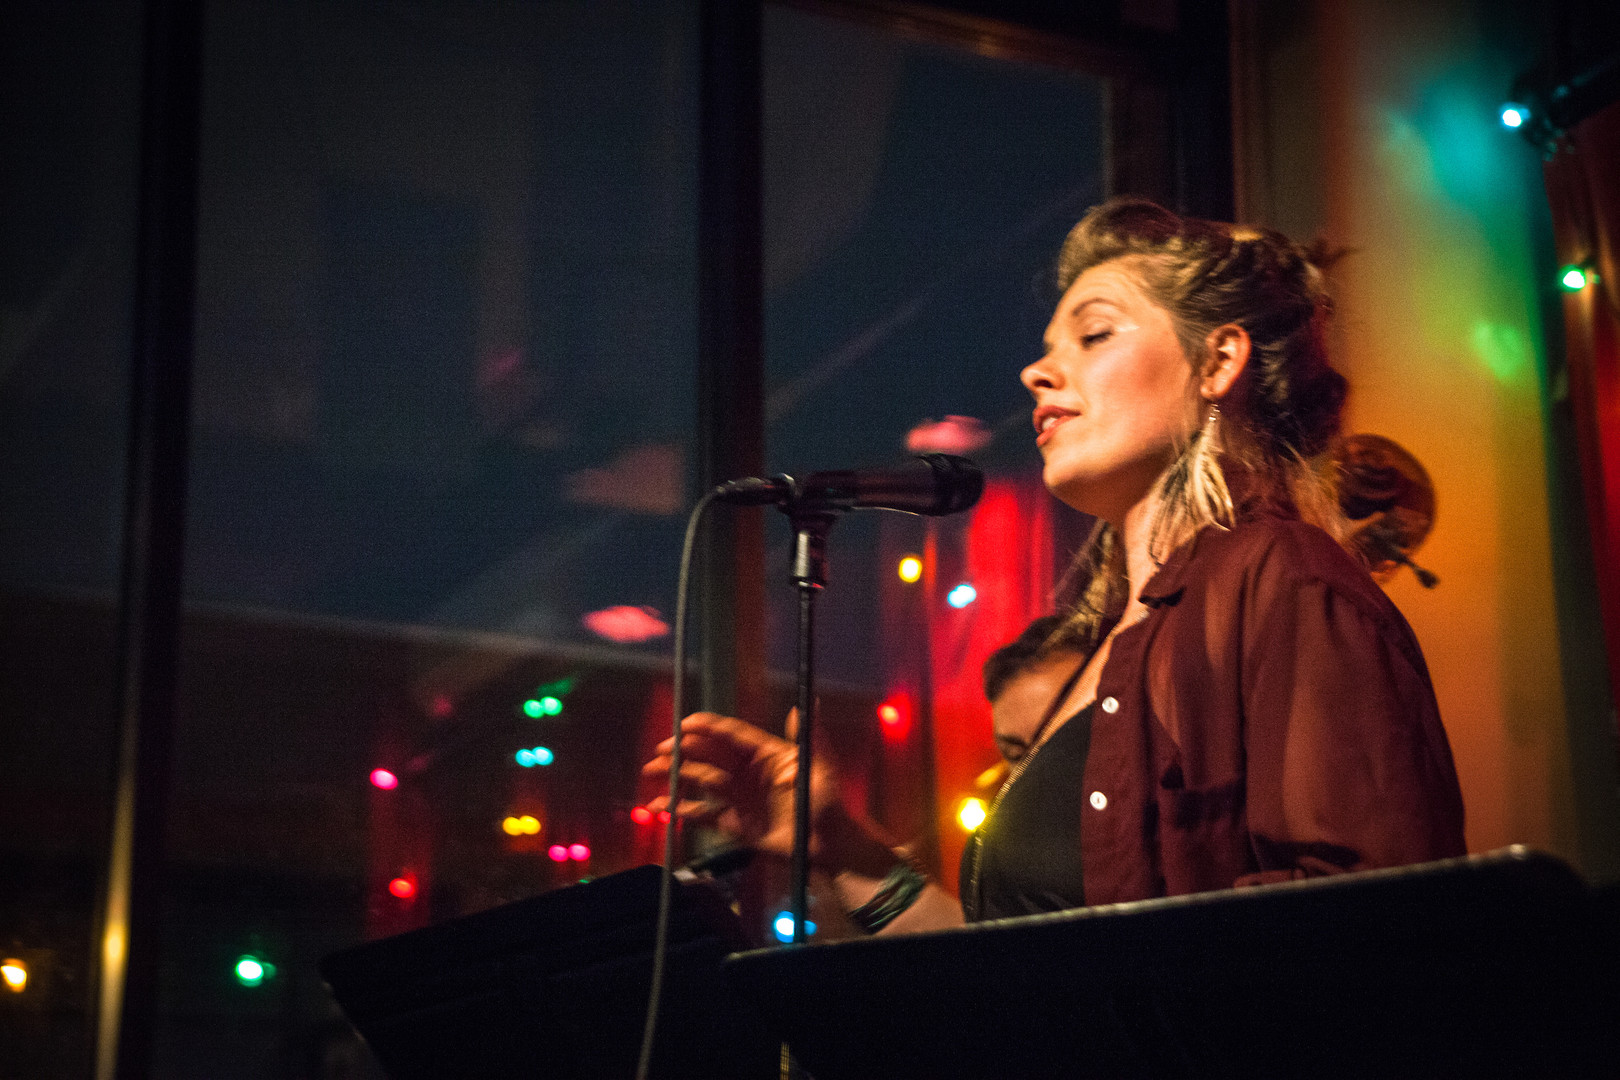 christina pawlowski, christina and the 612's, black dog cafe, lowertown st. paul, lowertown jazz, twin cities jazz singers, up and coming singers